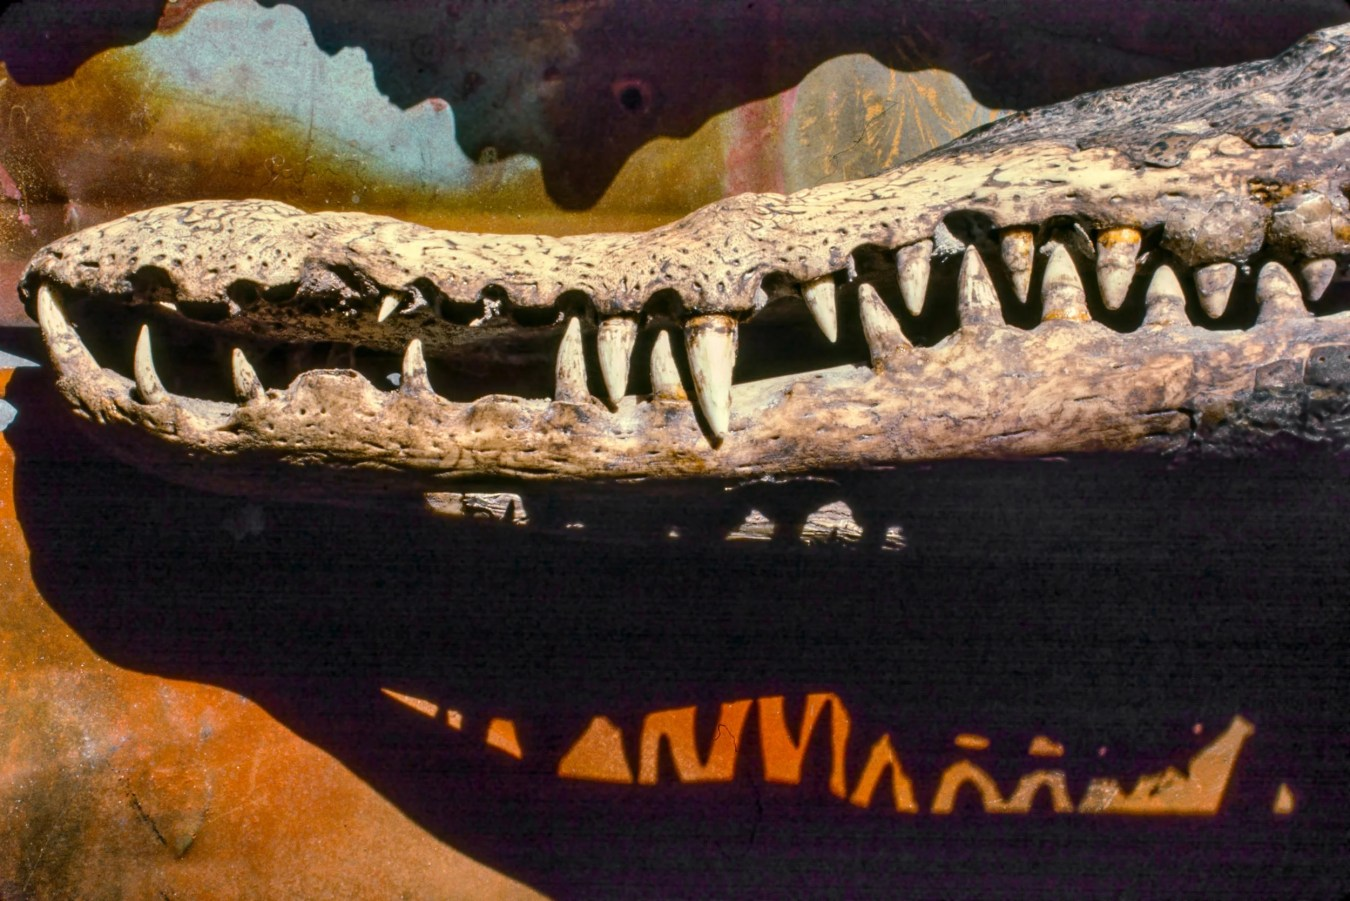 Crocodile jaw and shadow of its teeth.